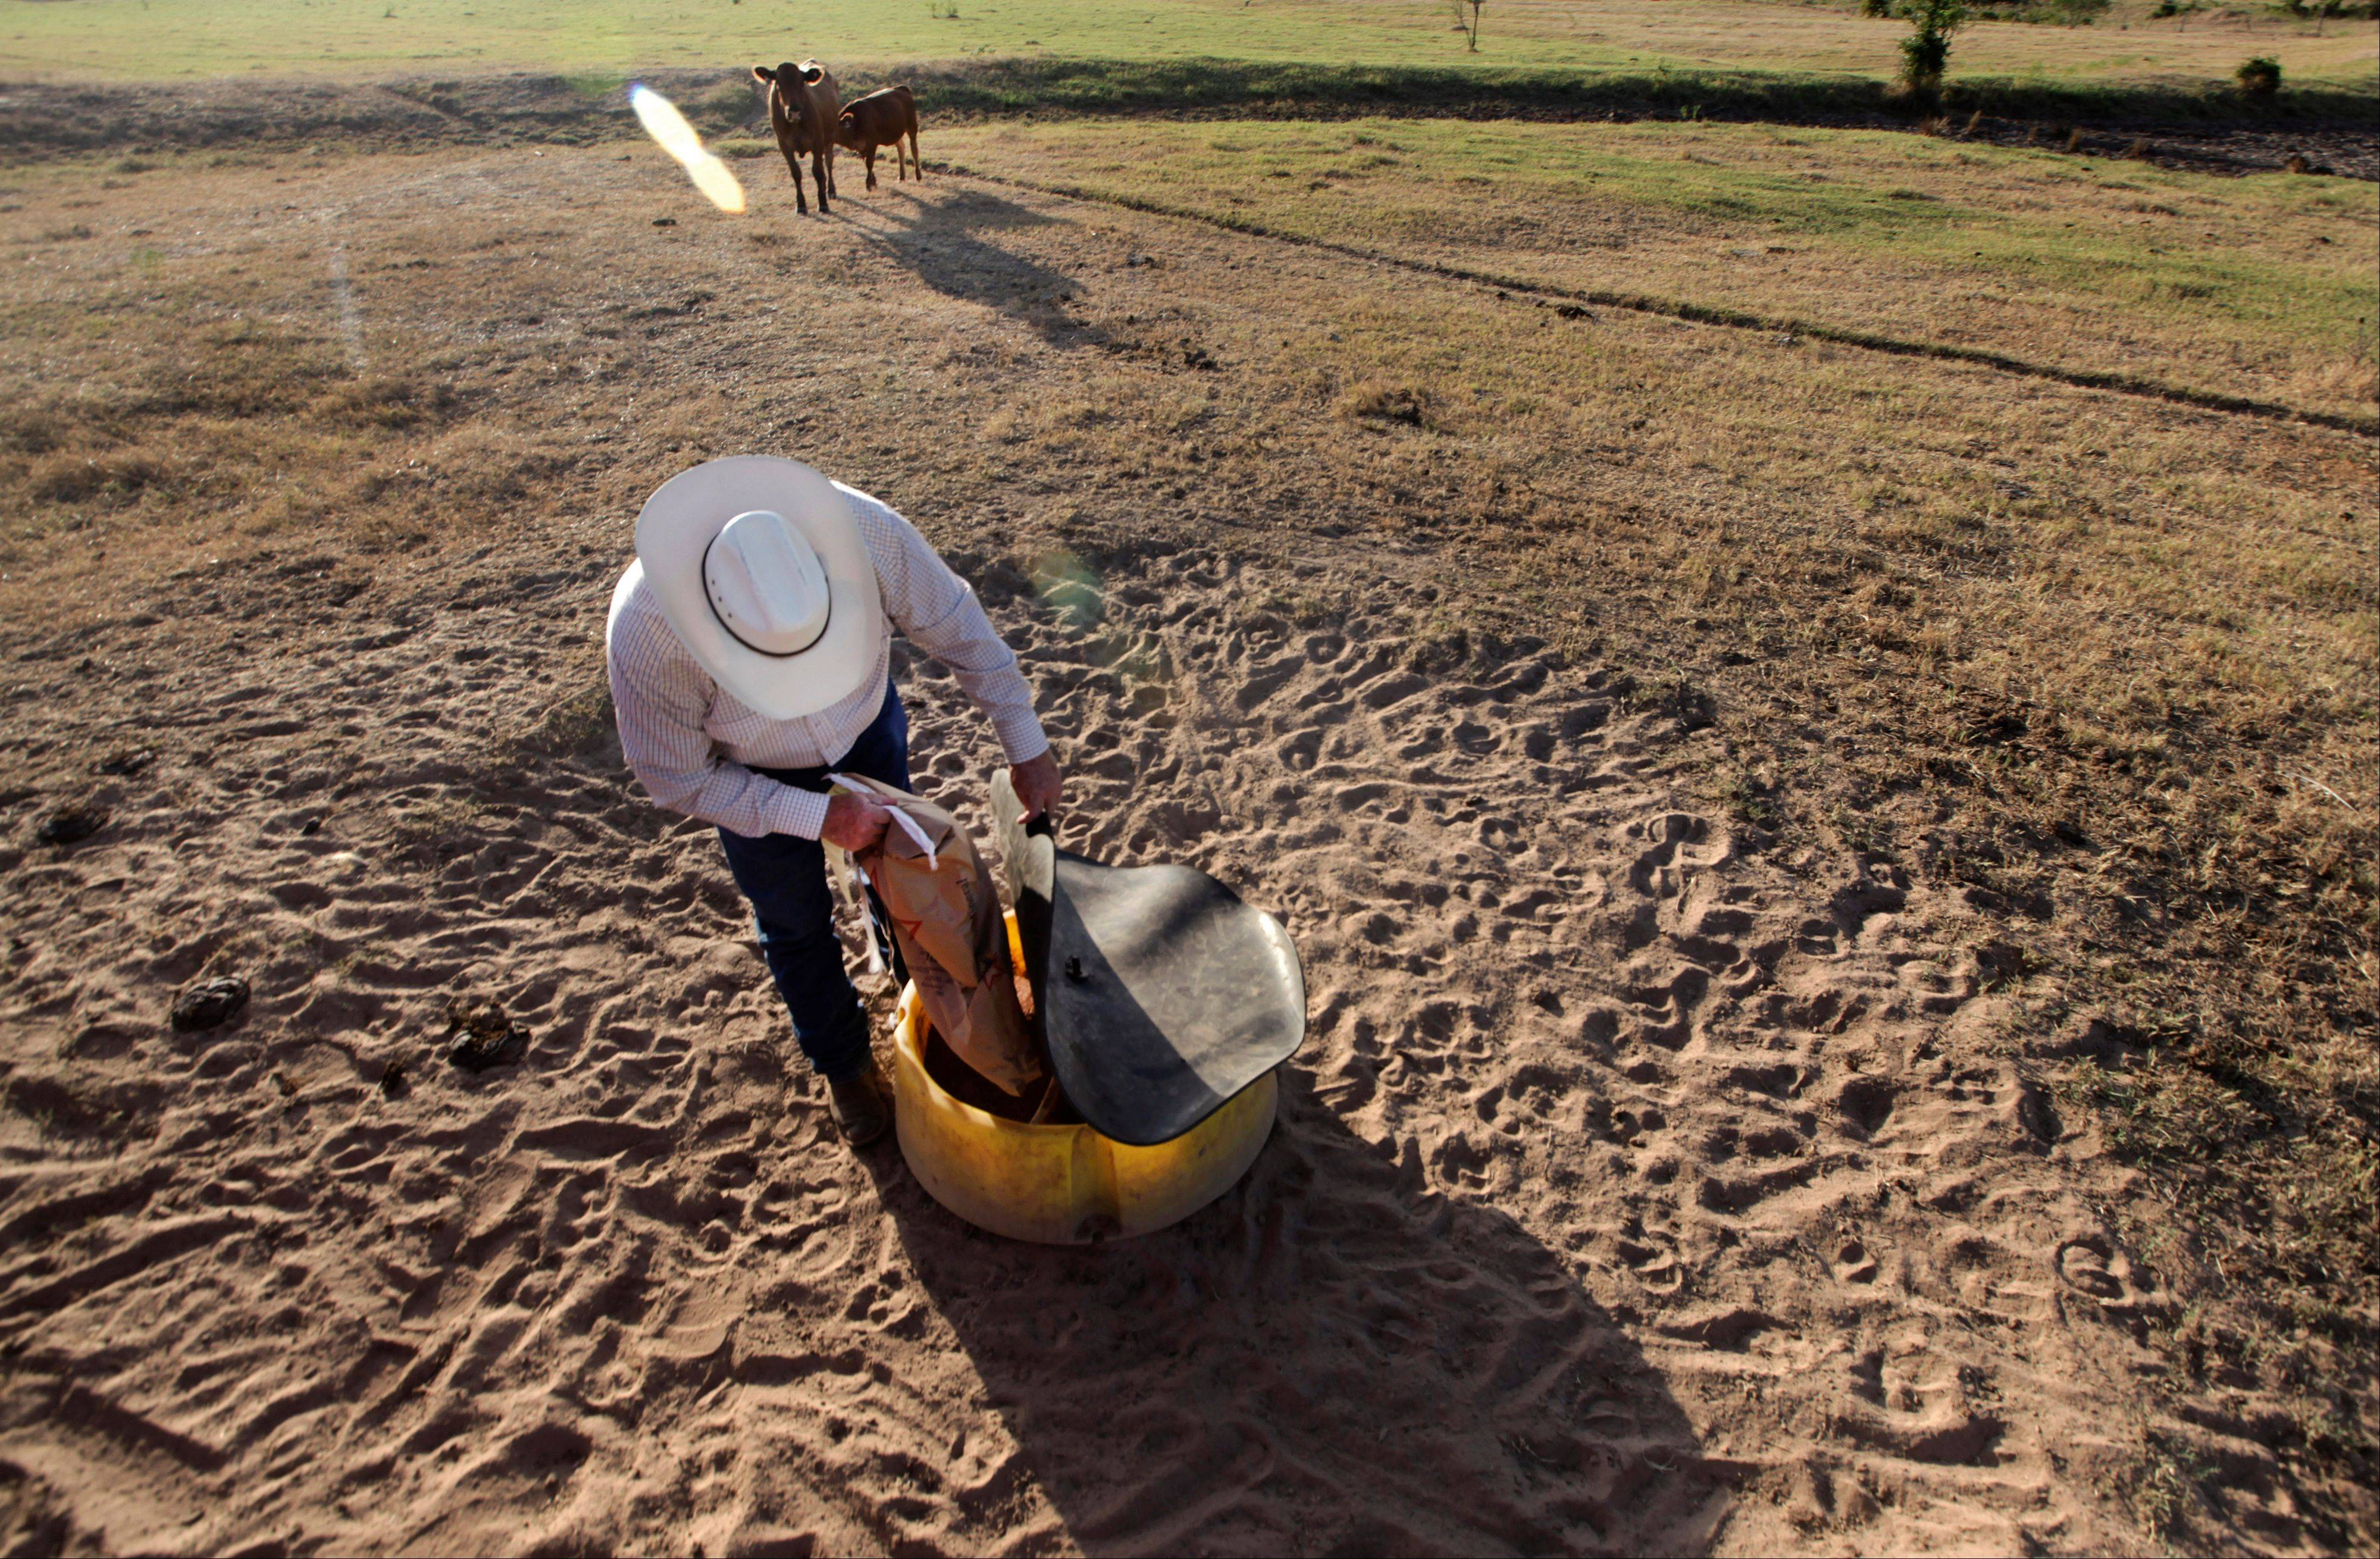 Cattle rancher Ron Gill puts out cottonseed feed for a calf reunited with its mother in rural Parker County near Springtown, Texas.